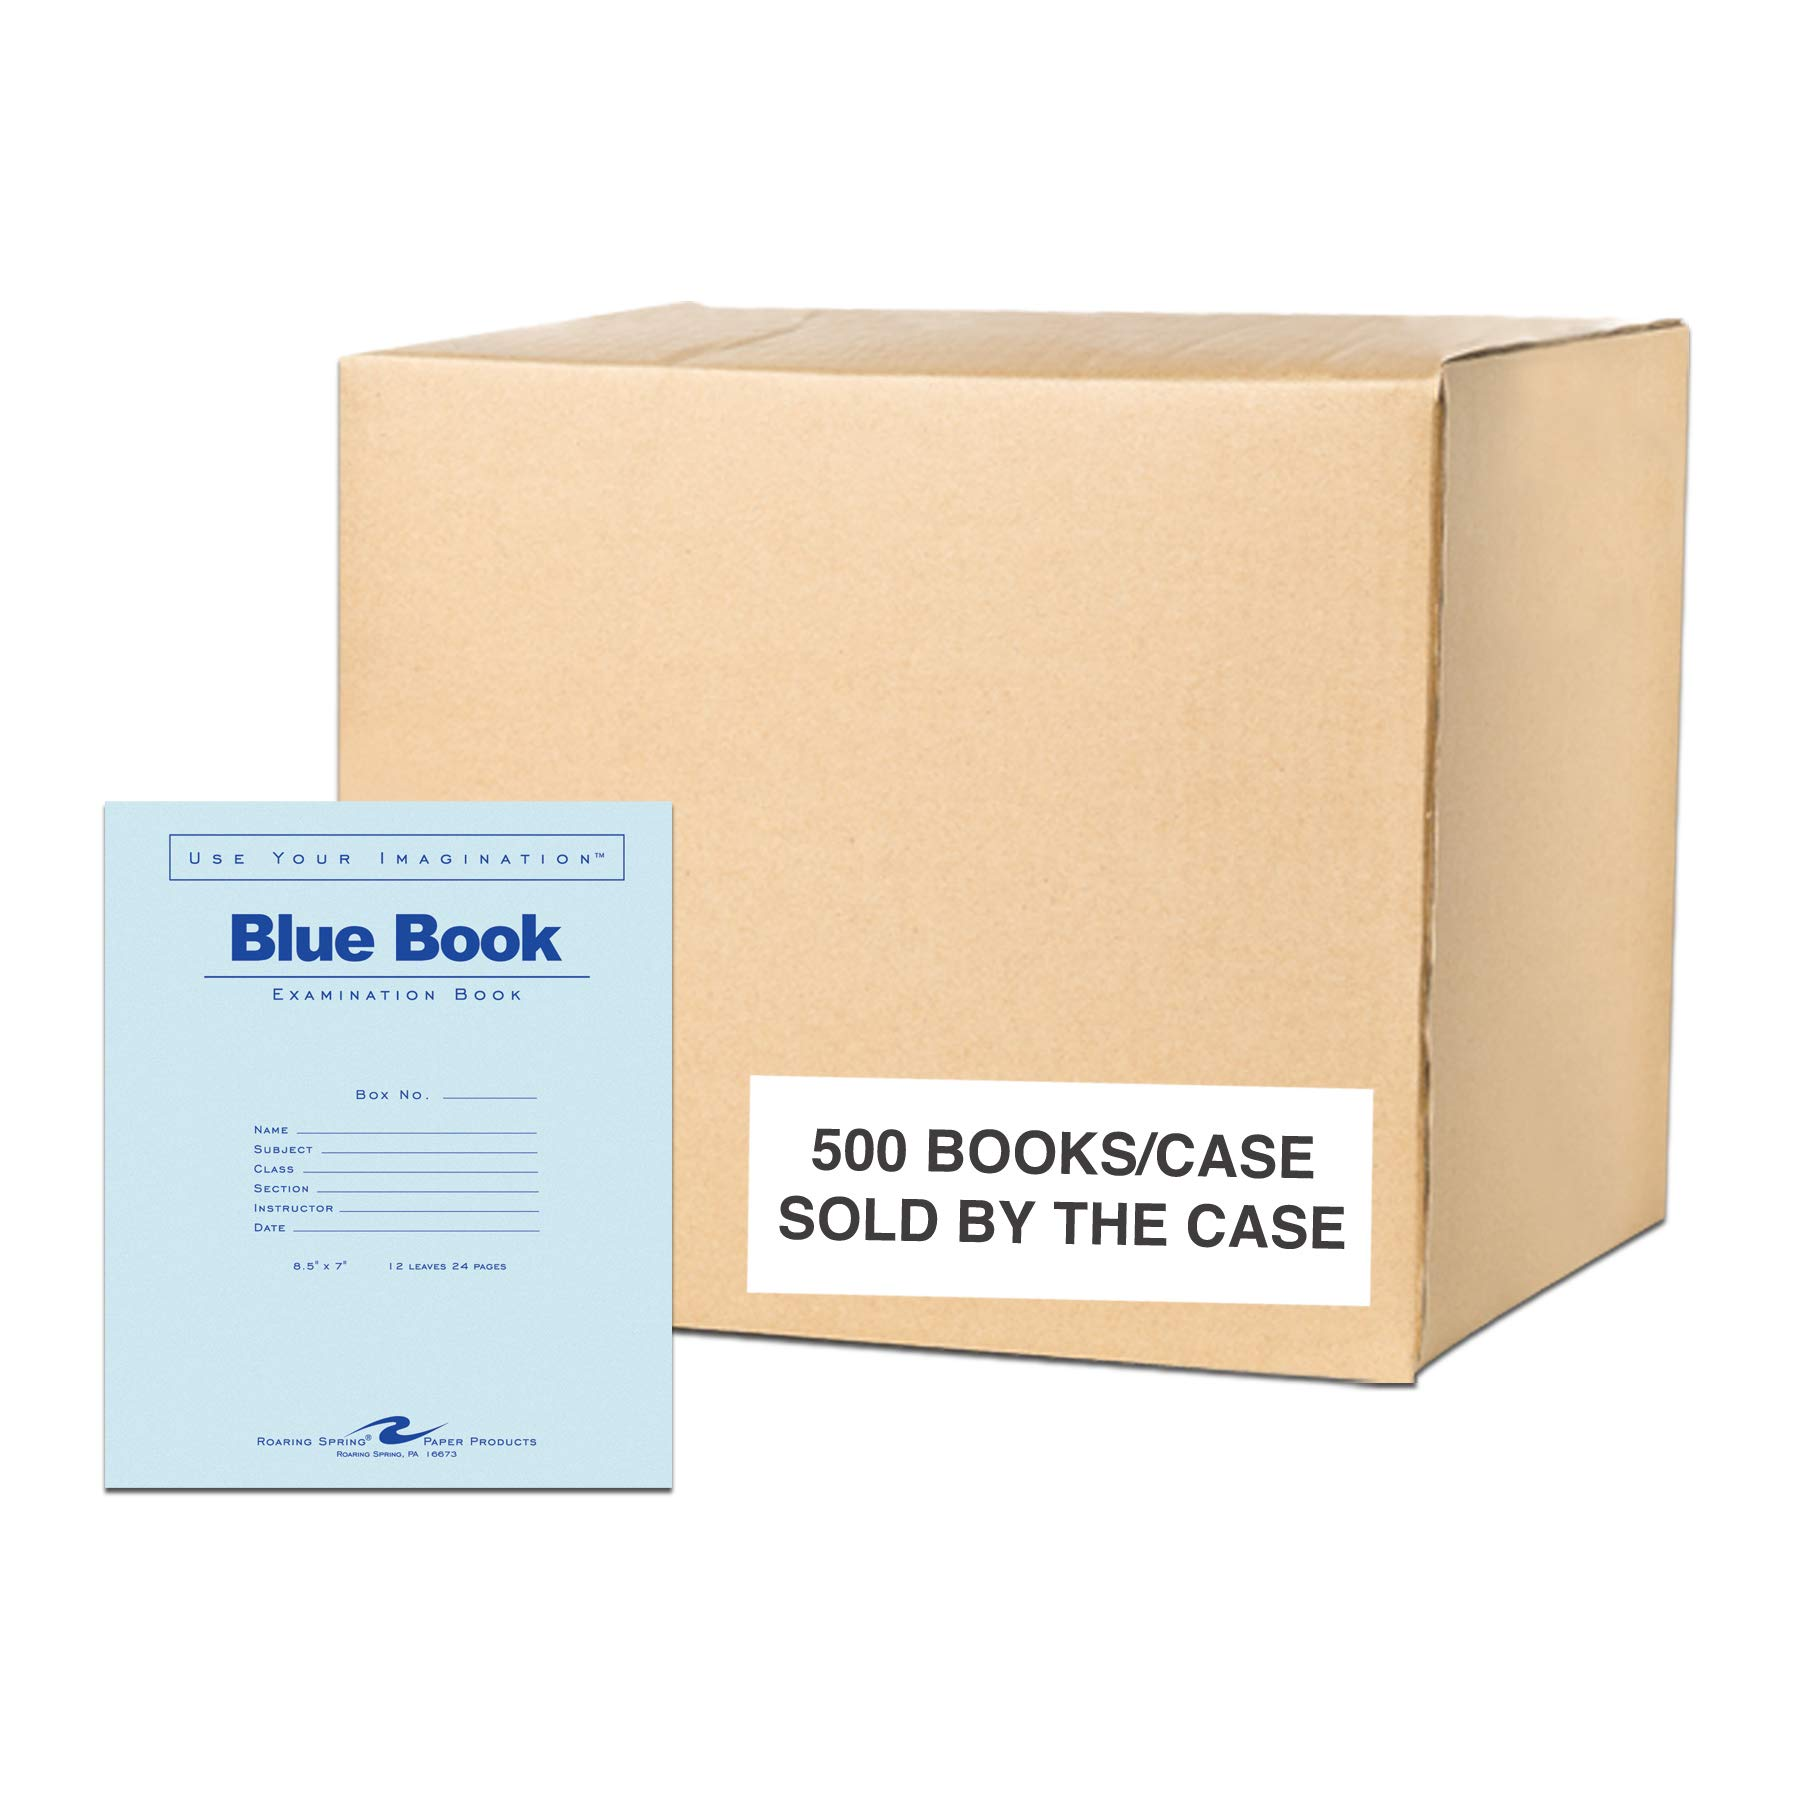 Case of 500 Exam Books, 8.5''x7'', 12 sheets/24 pages of 15# Smooth White Paper, Wide Ruled W/ Margin, Heavy Blue Cover, Stapled